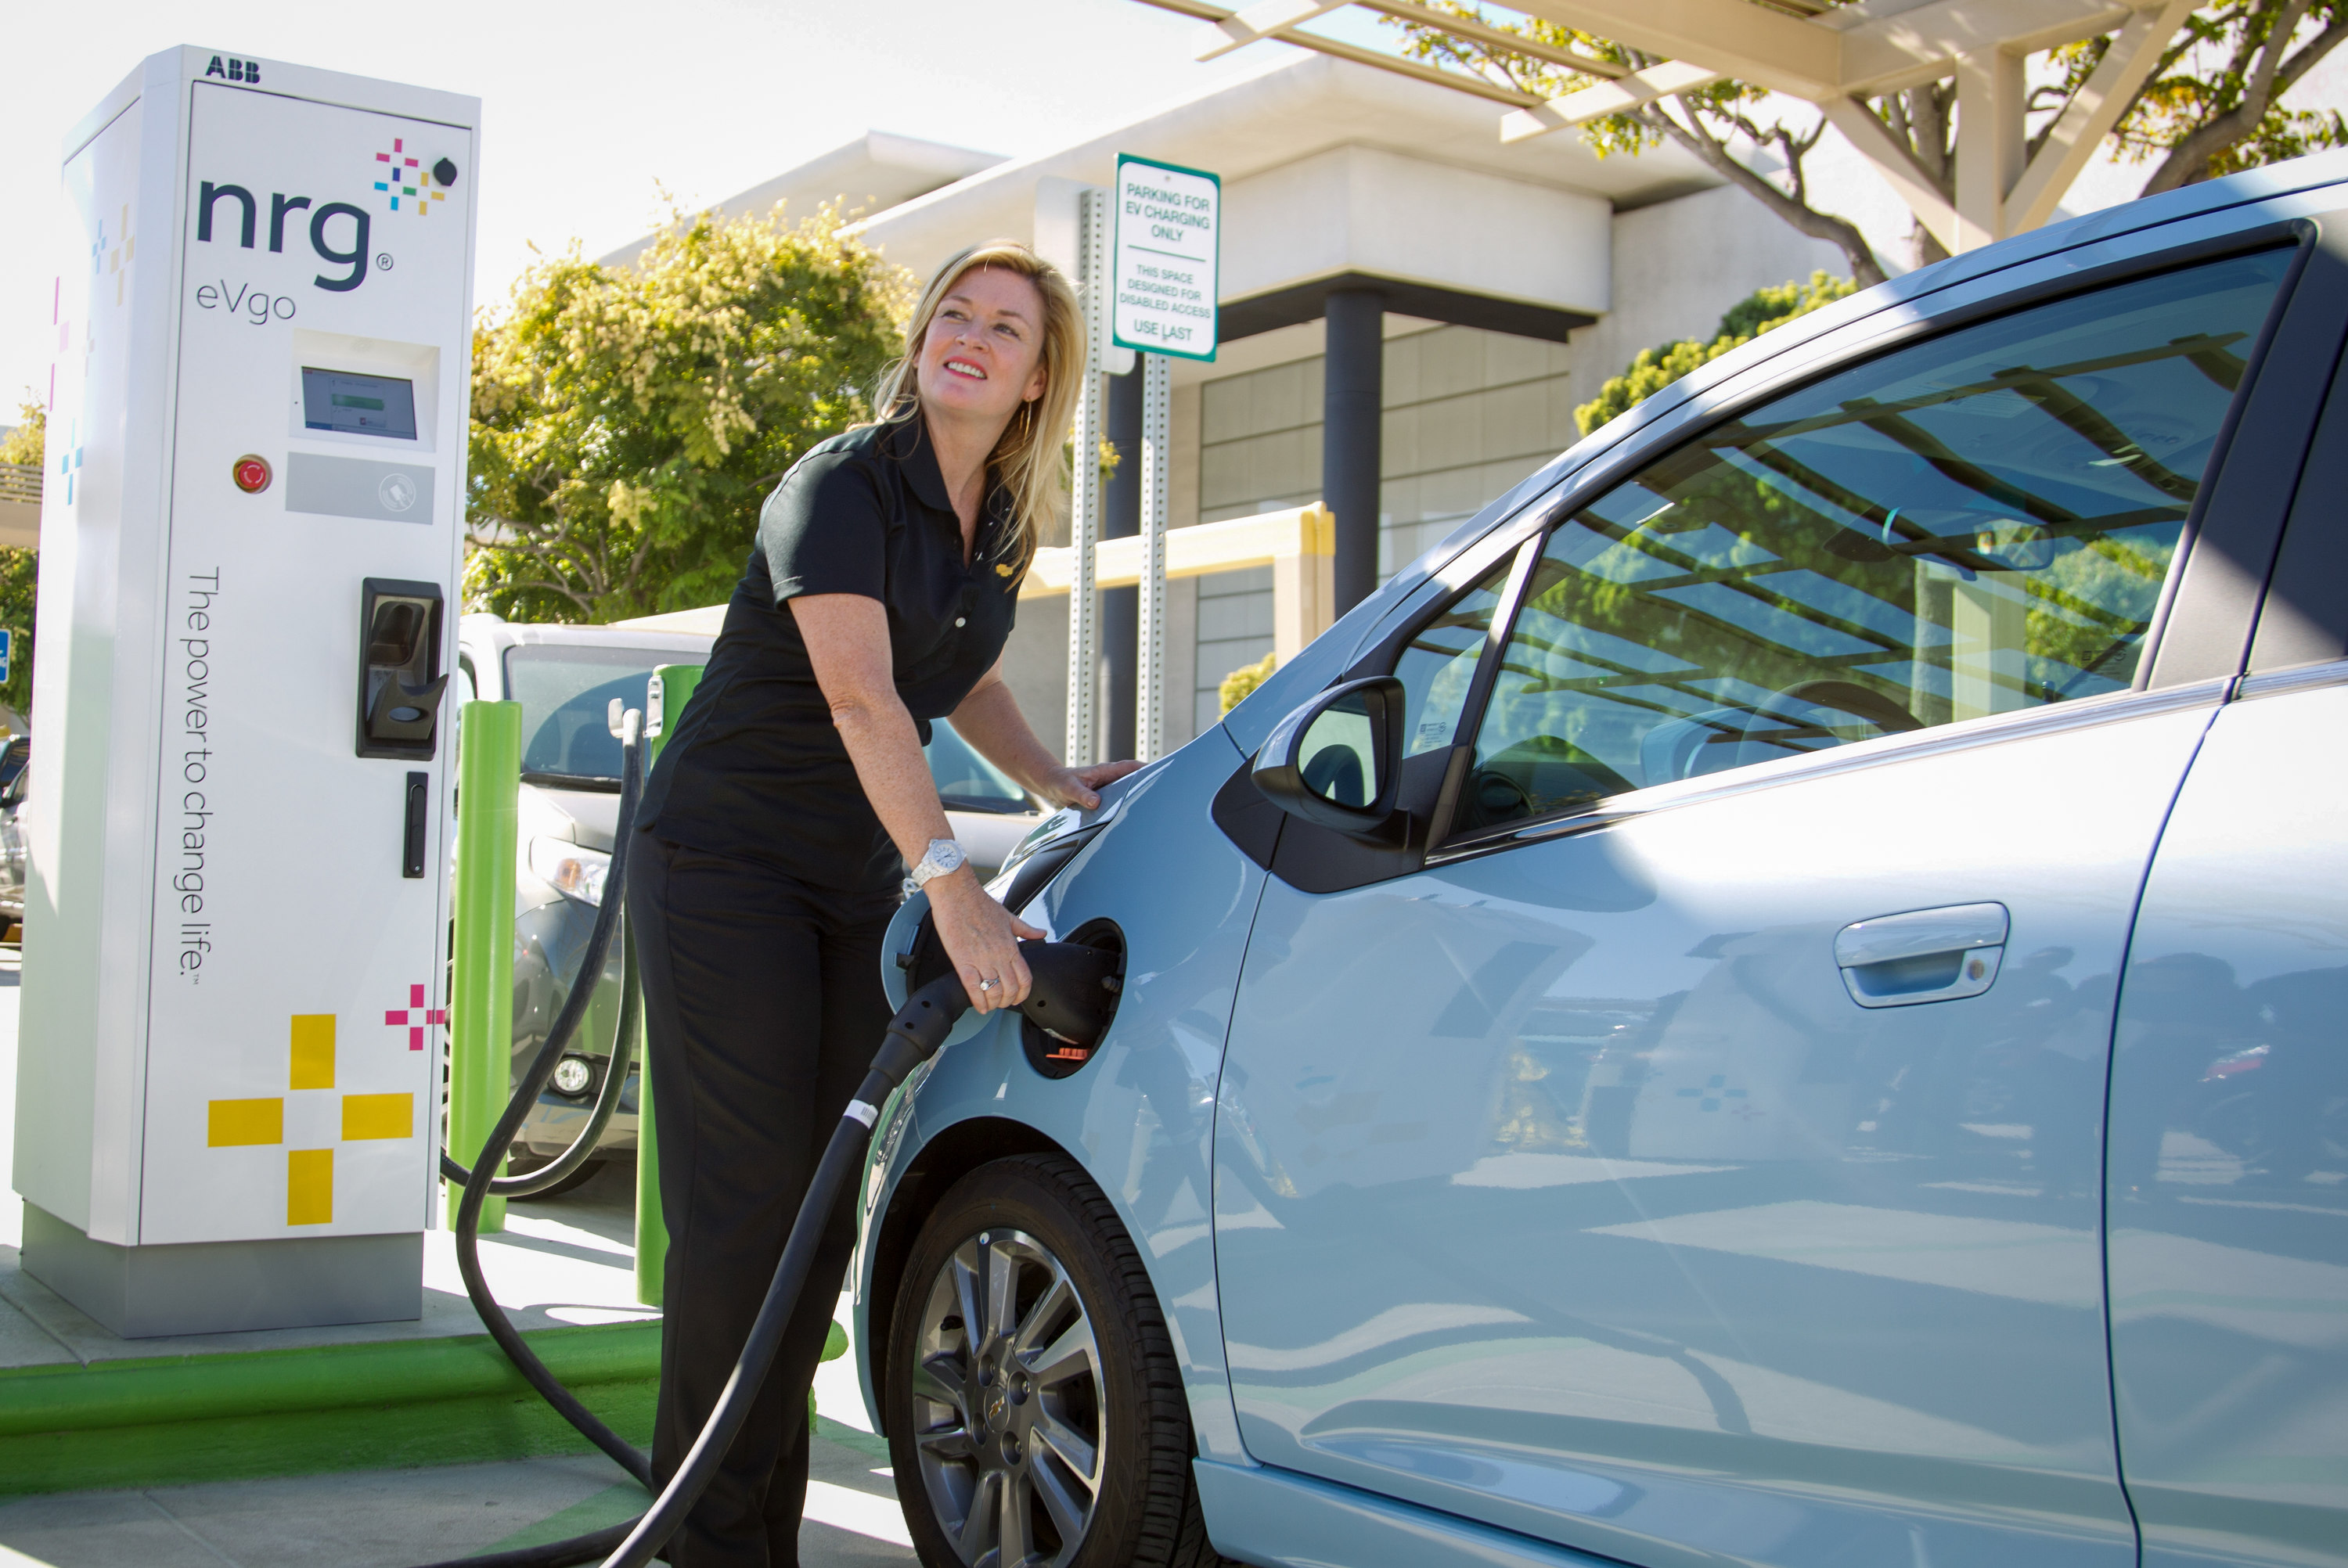 Mall Gets First Public Sae Fast Charging Station For Evs